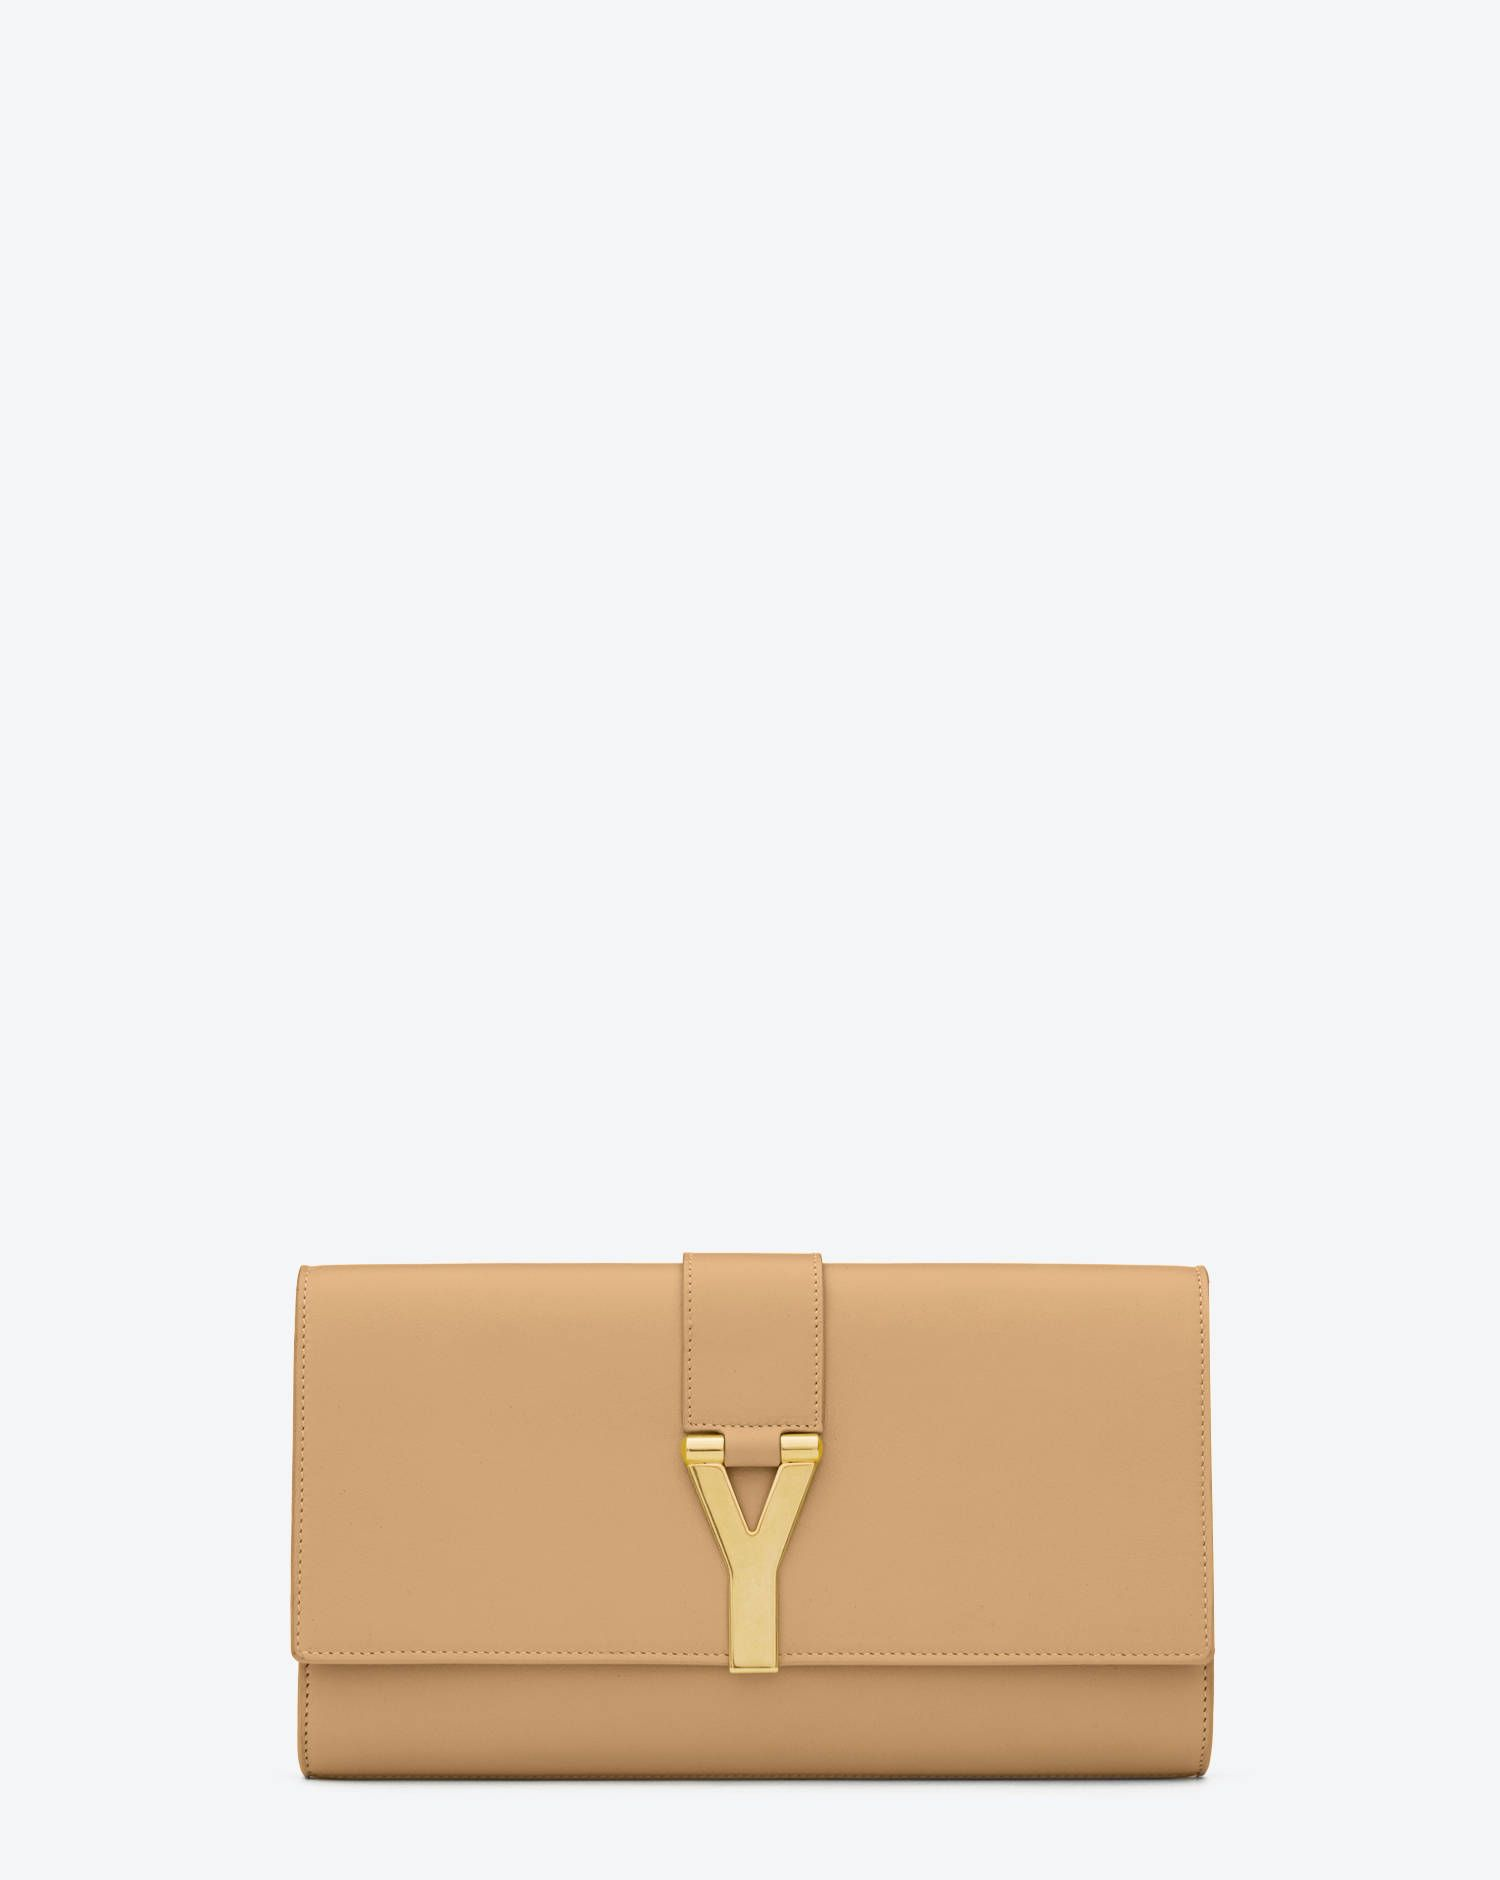 4b38f3aaab3 Y Clutch in Beige Leather - Y Clutches – Handbags – Previous Collection – Yves  Saint Laurent – www.ysl.com